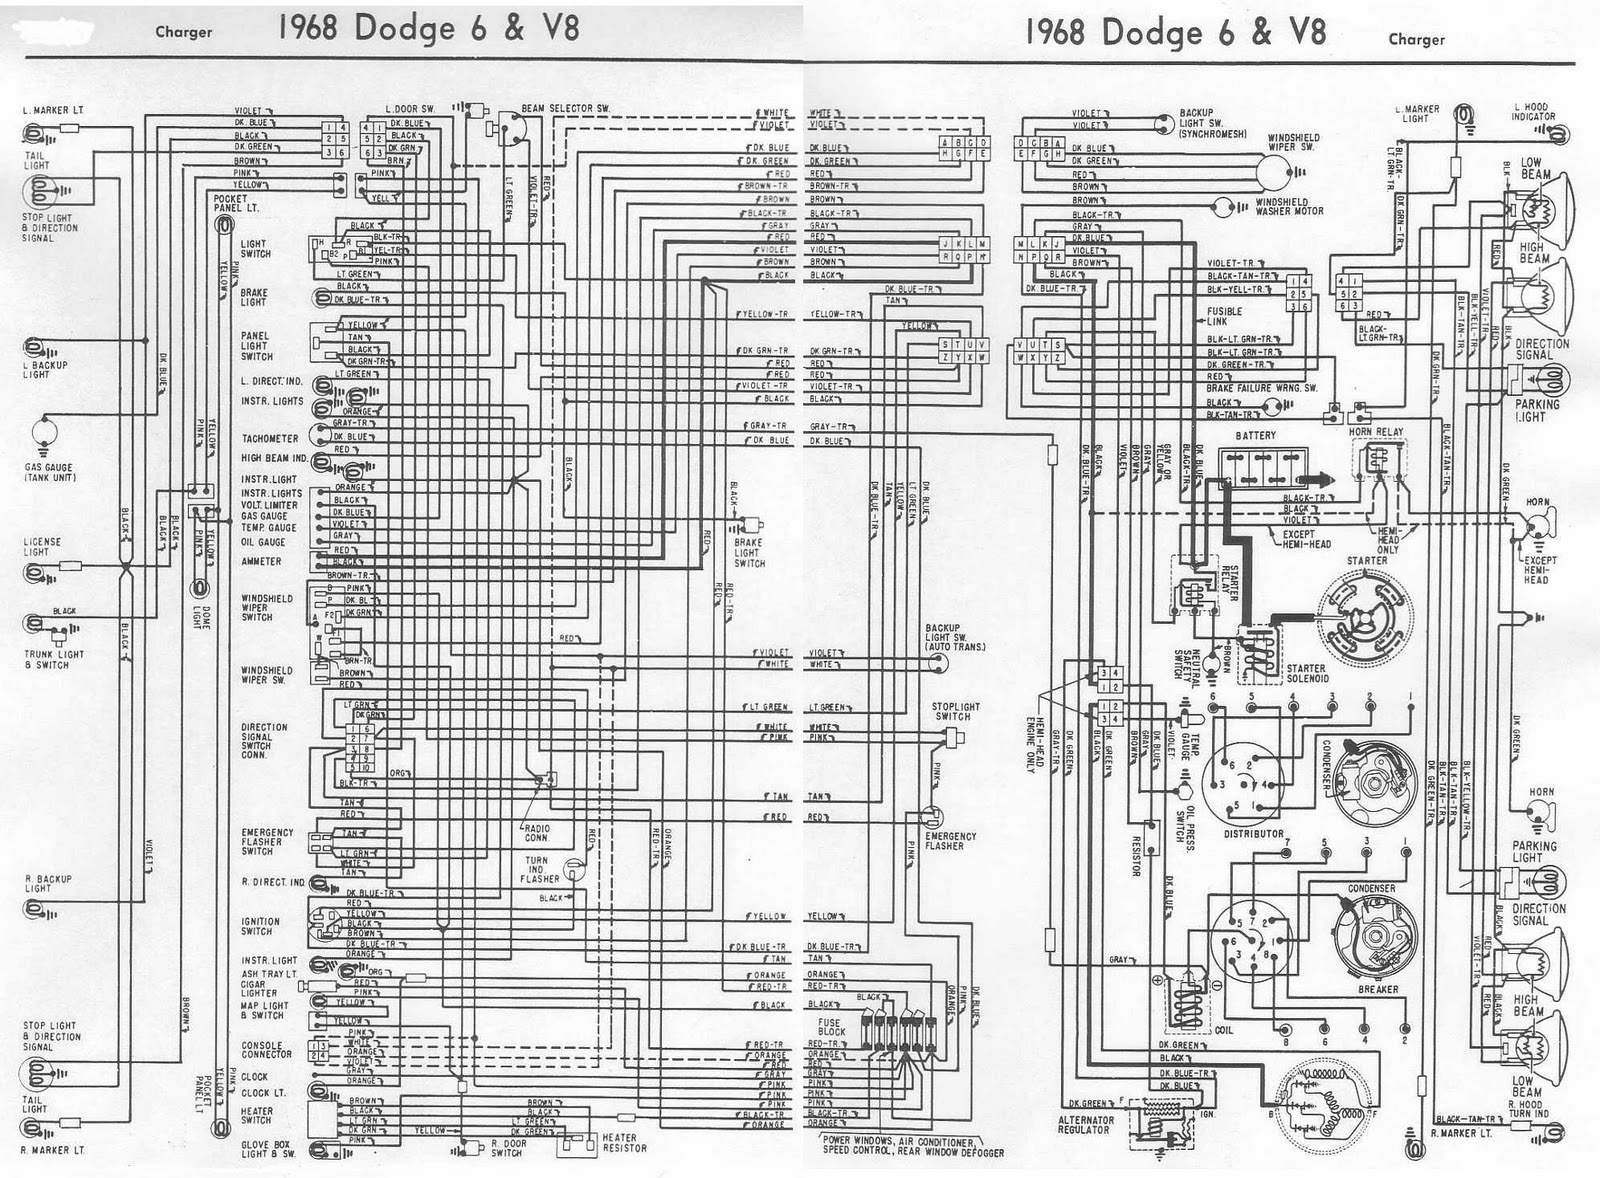 wiring diagram dodge charger wiring wiring diagrams online dodge charger 1968 6 and v8 complete electrical wiring diagram